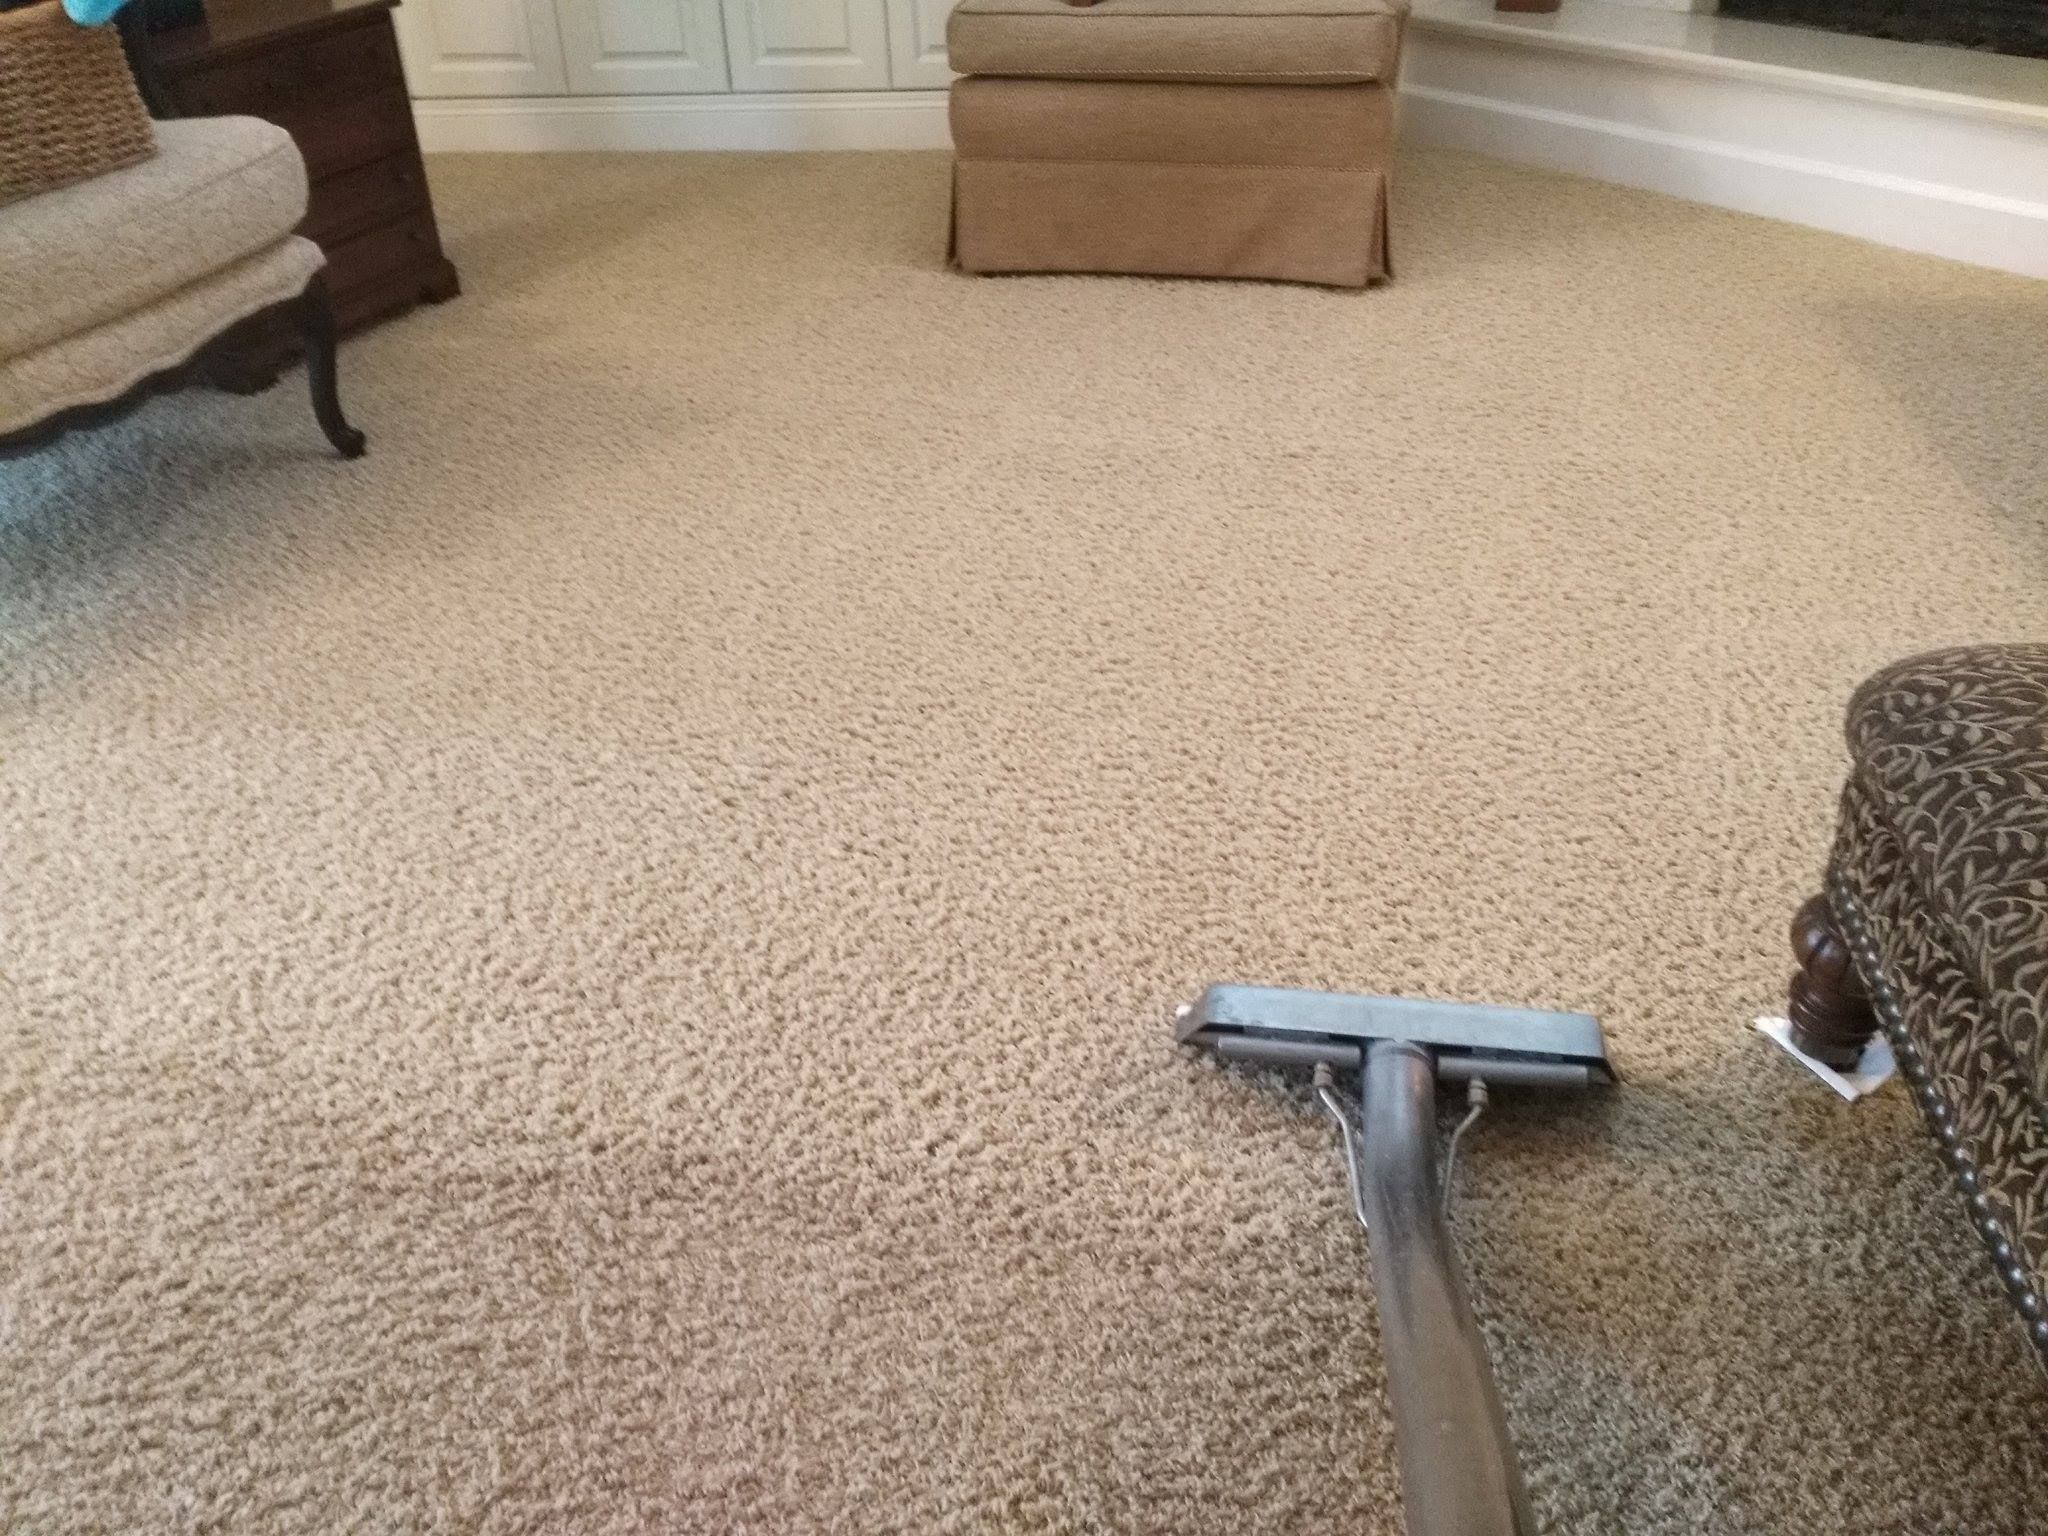 One of the most trusted carpet cleaning services for home as well as business in Singapore